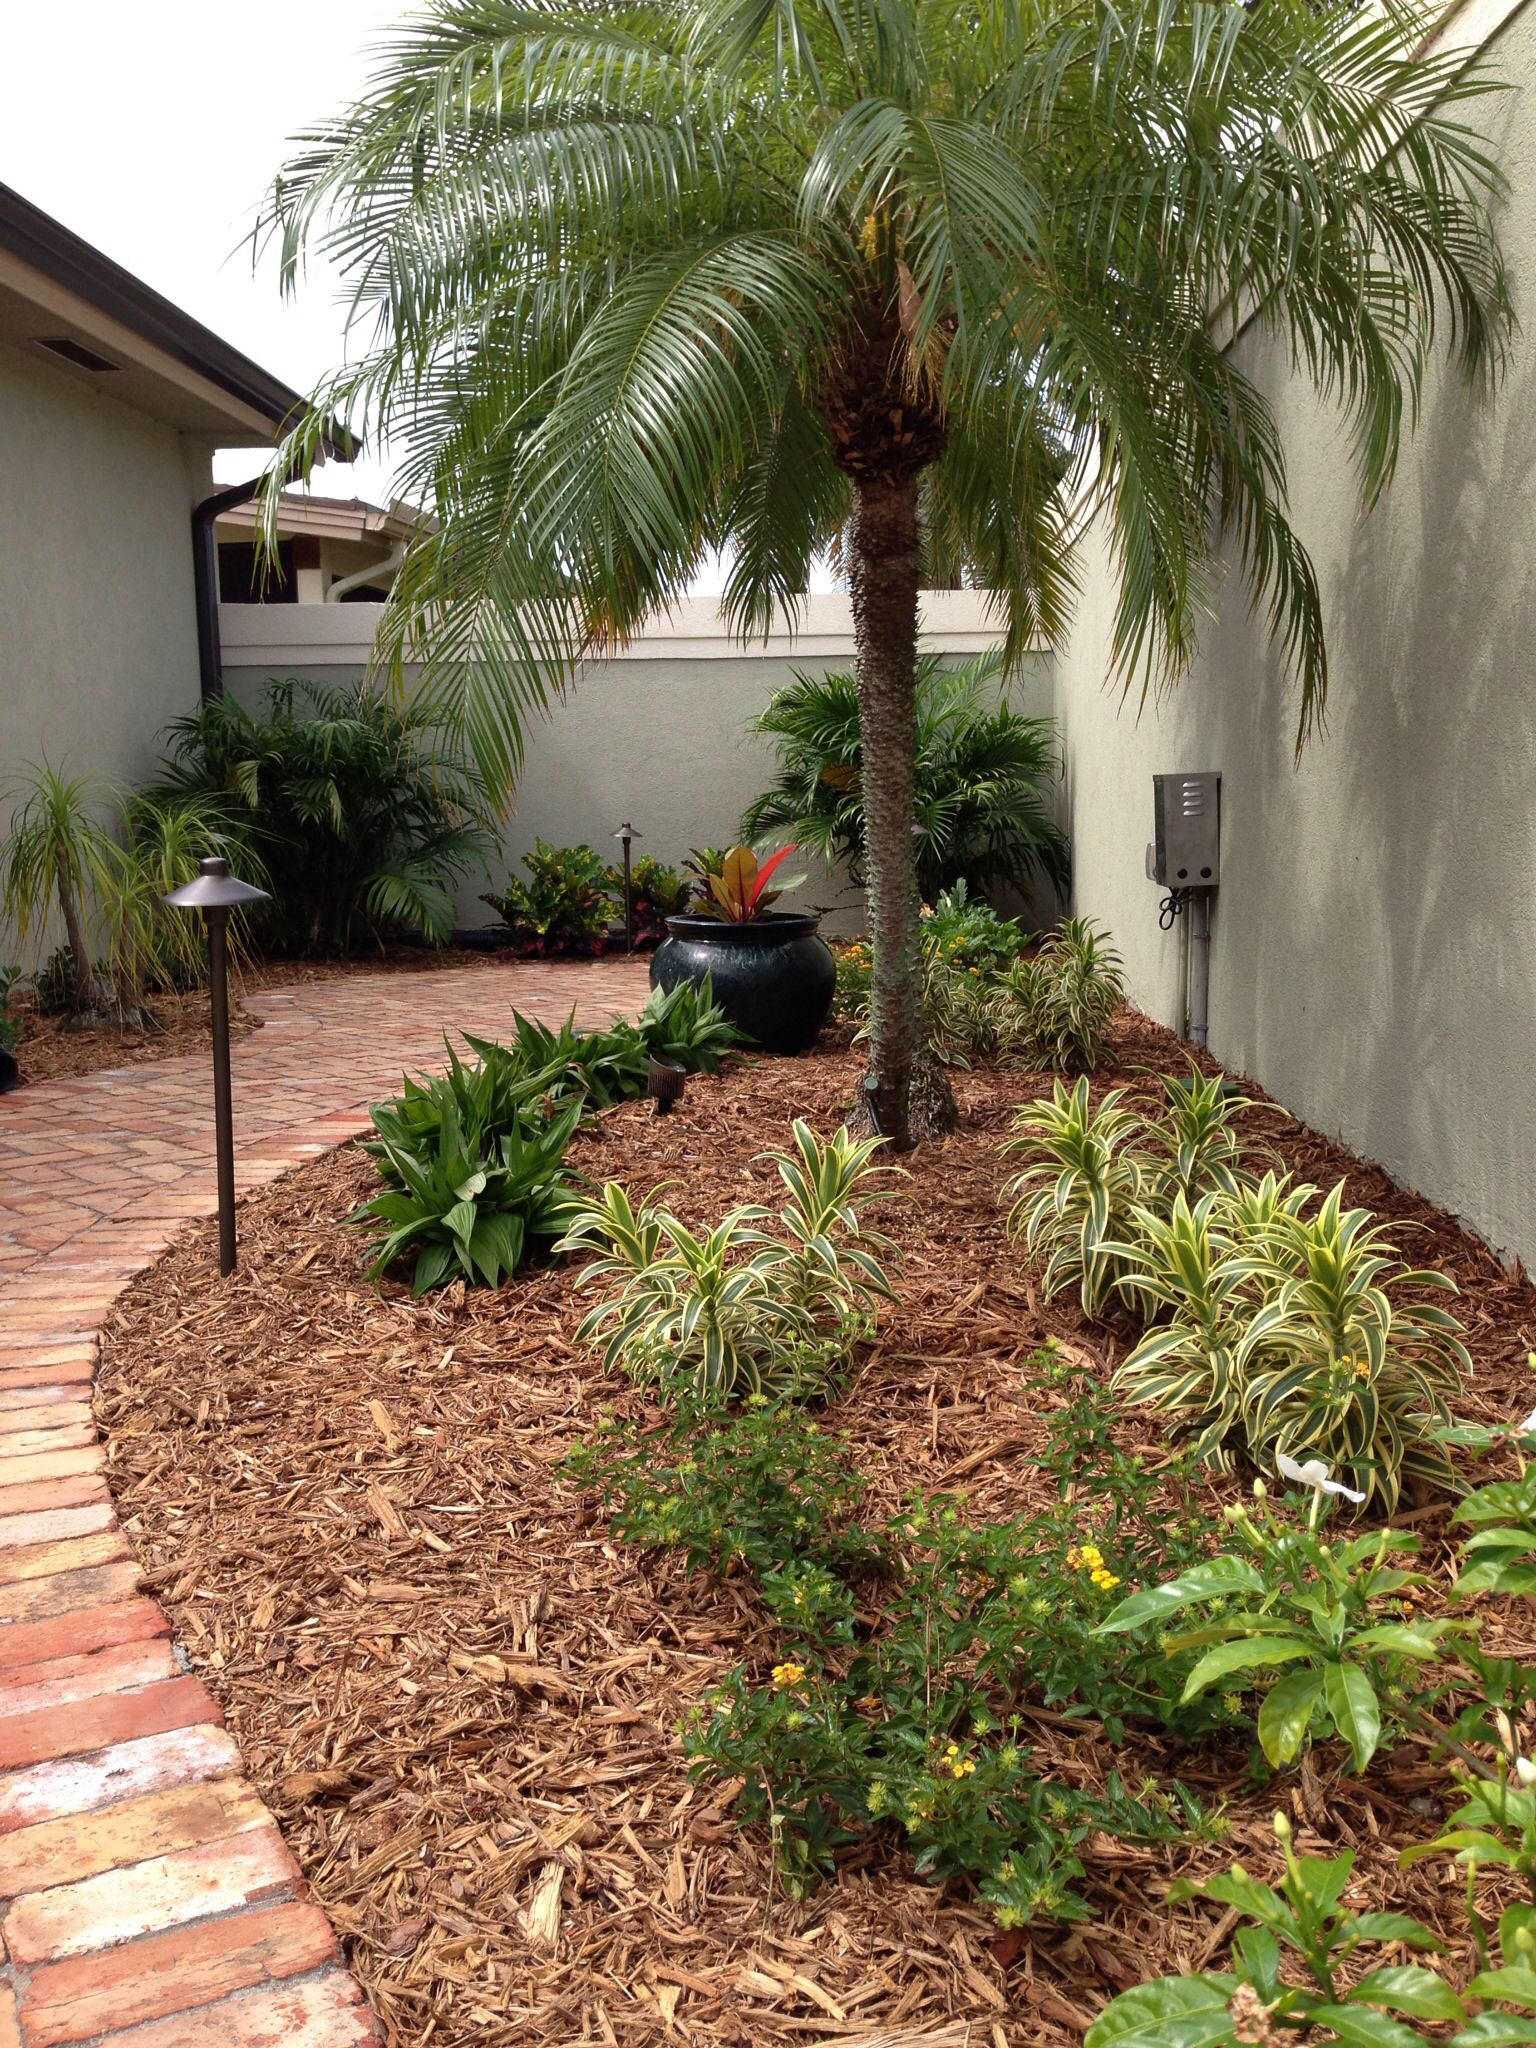 Tropical backyard design with Old Chicago Brick pavers ... on Tropical Backyards  id=72400